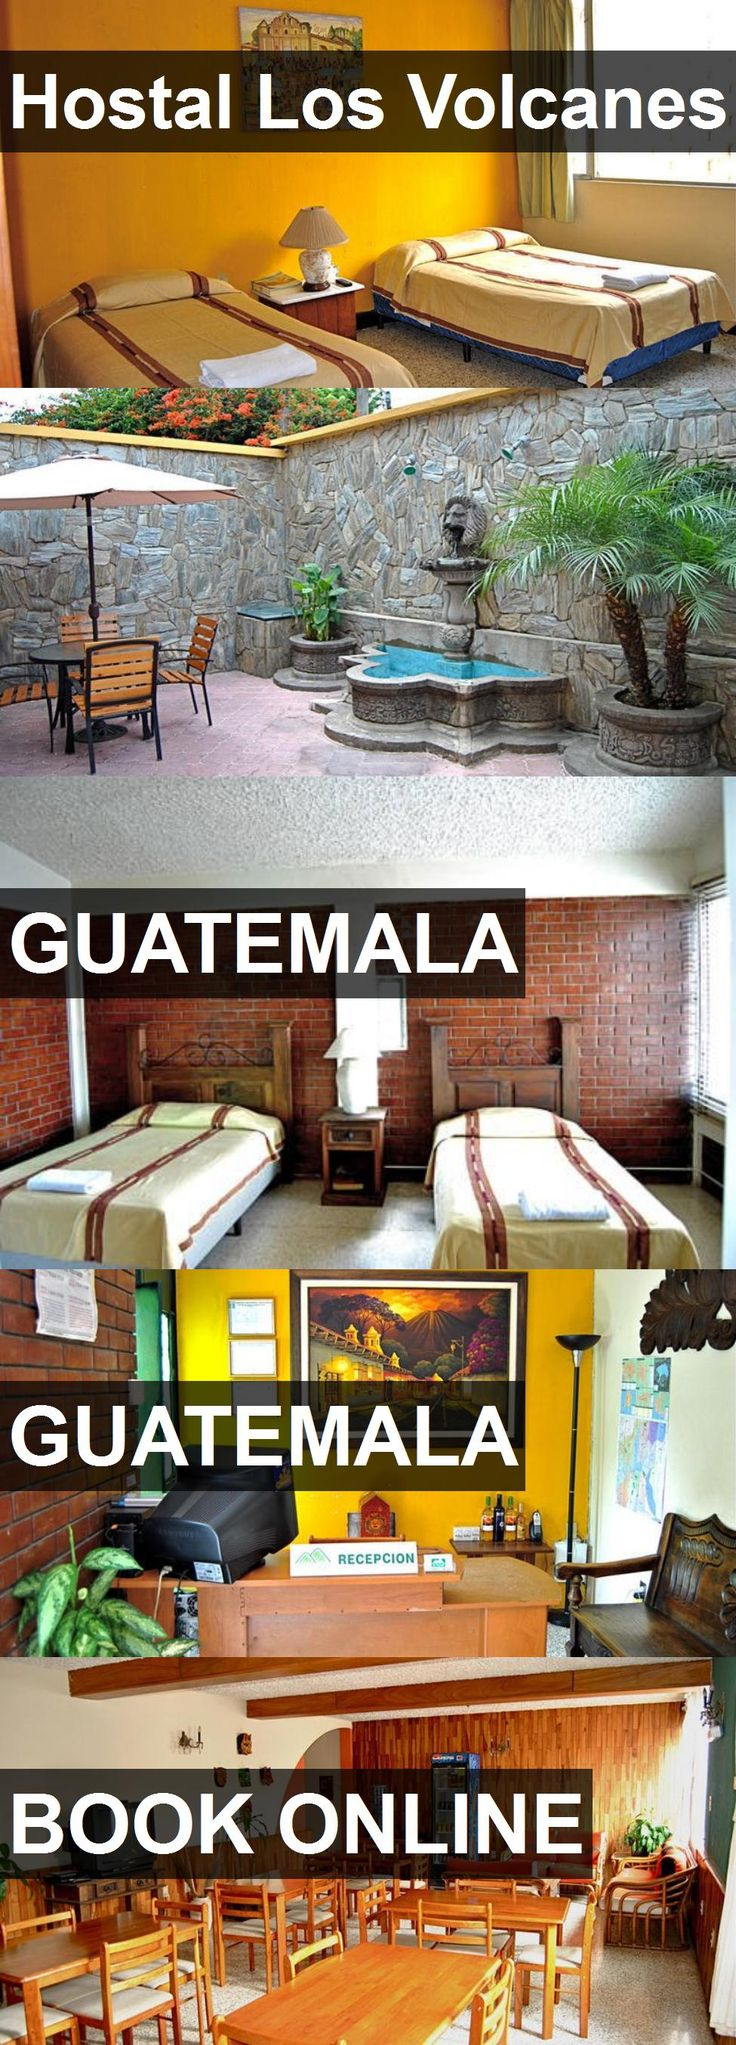 Hotel Hostal Los Volcanes in Guatemala, Guatemala. For more information, photos, reviews and best prices please follow the link. #Guatemala #Guatemala #hotel #travel #vacation